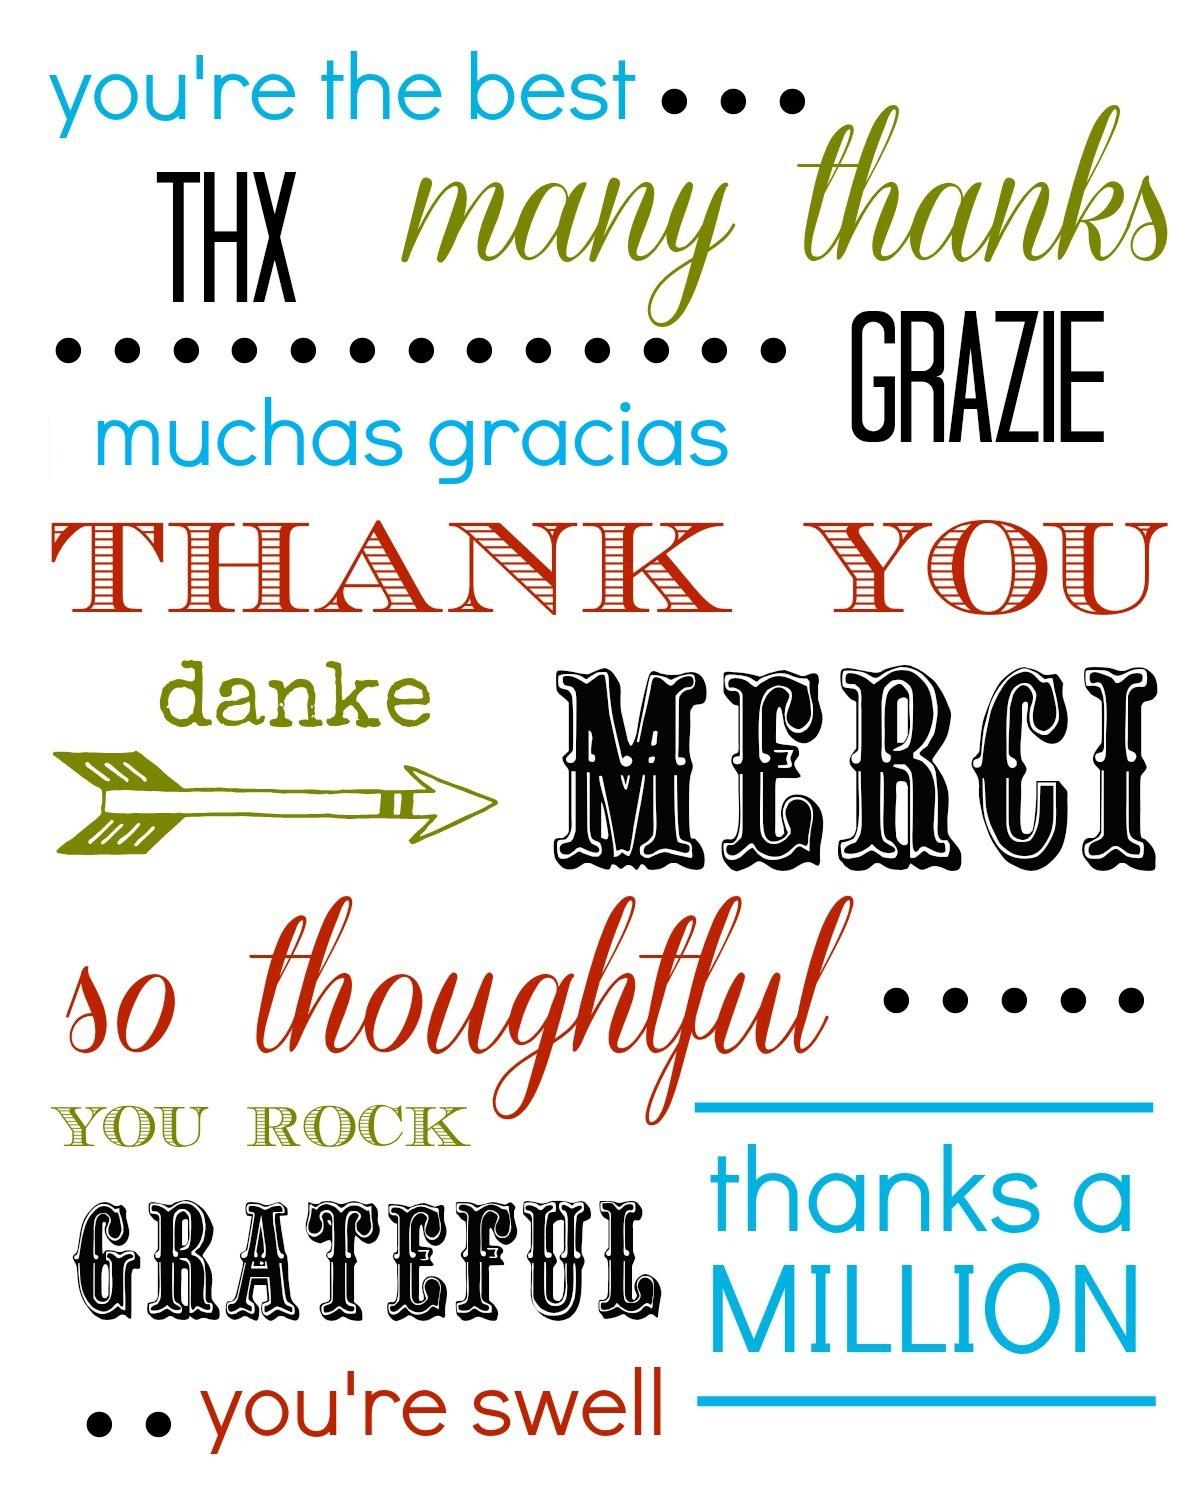 Thank You Card Free Printable - Free Printable Soccer Thank You Cards